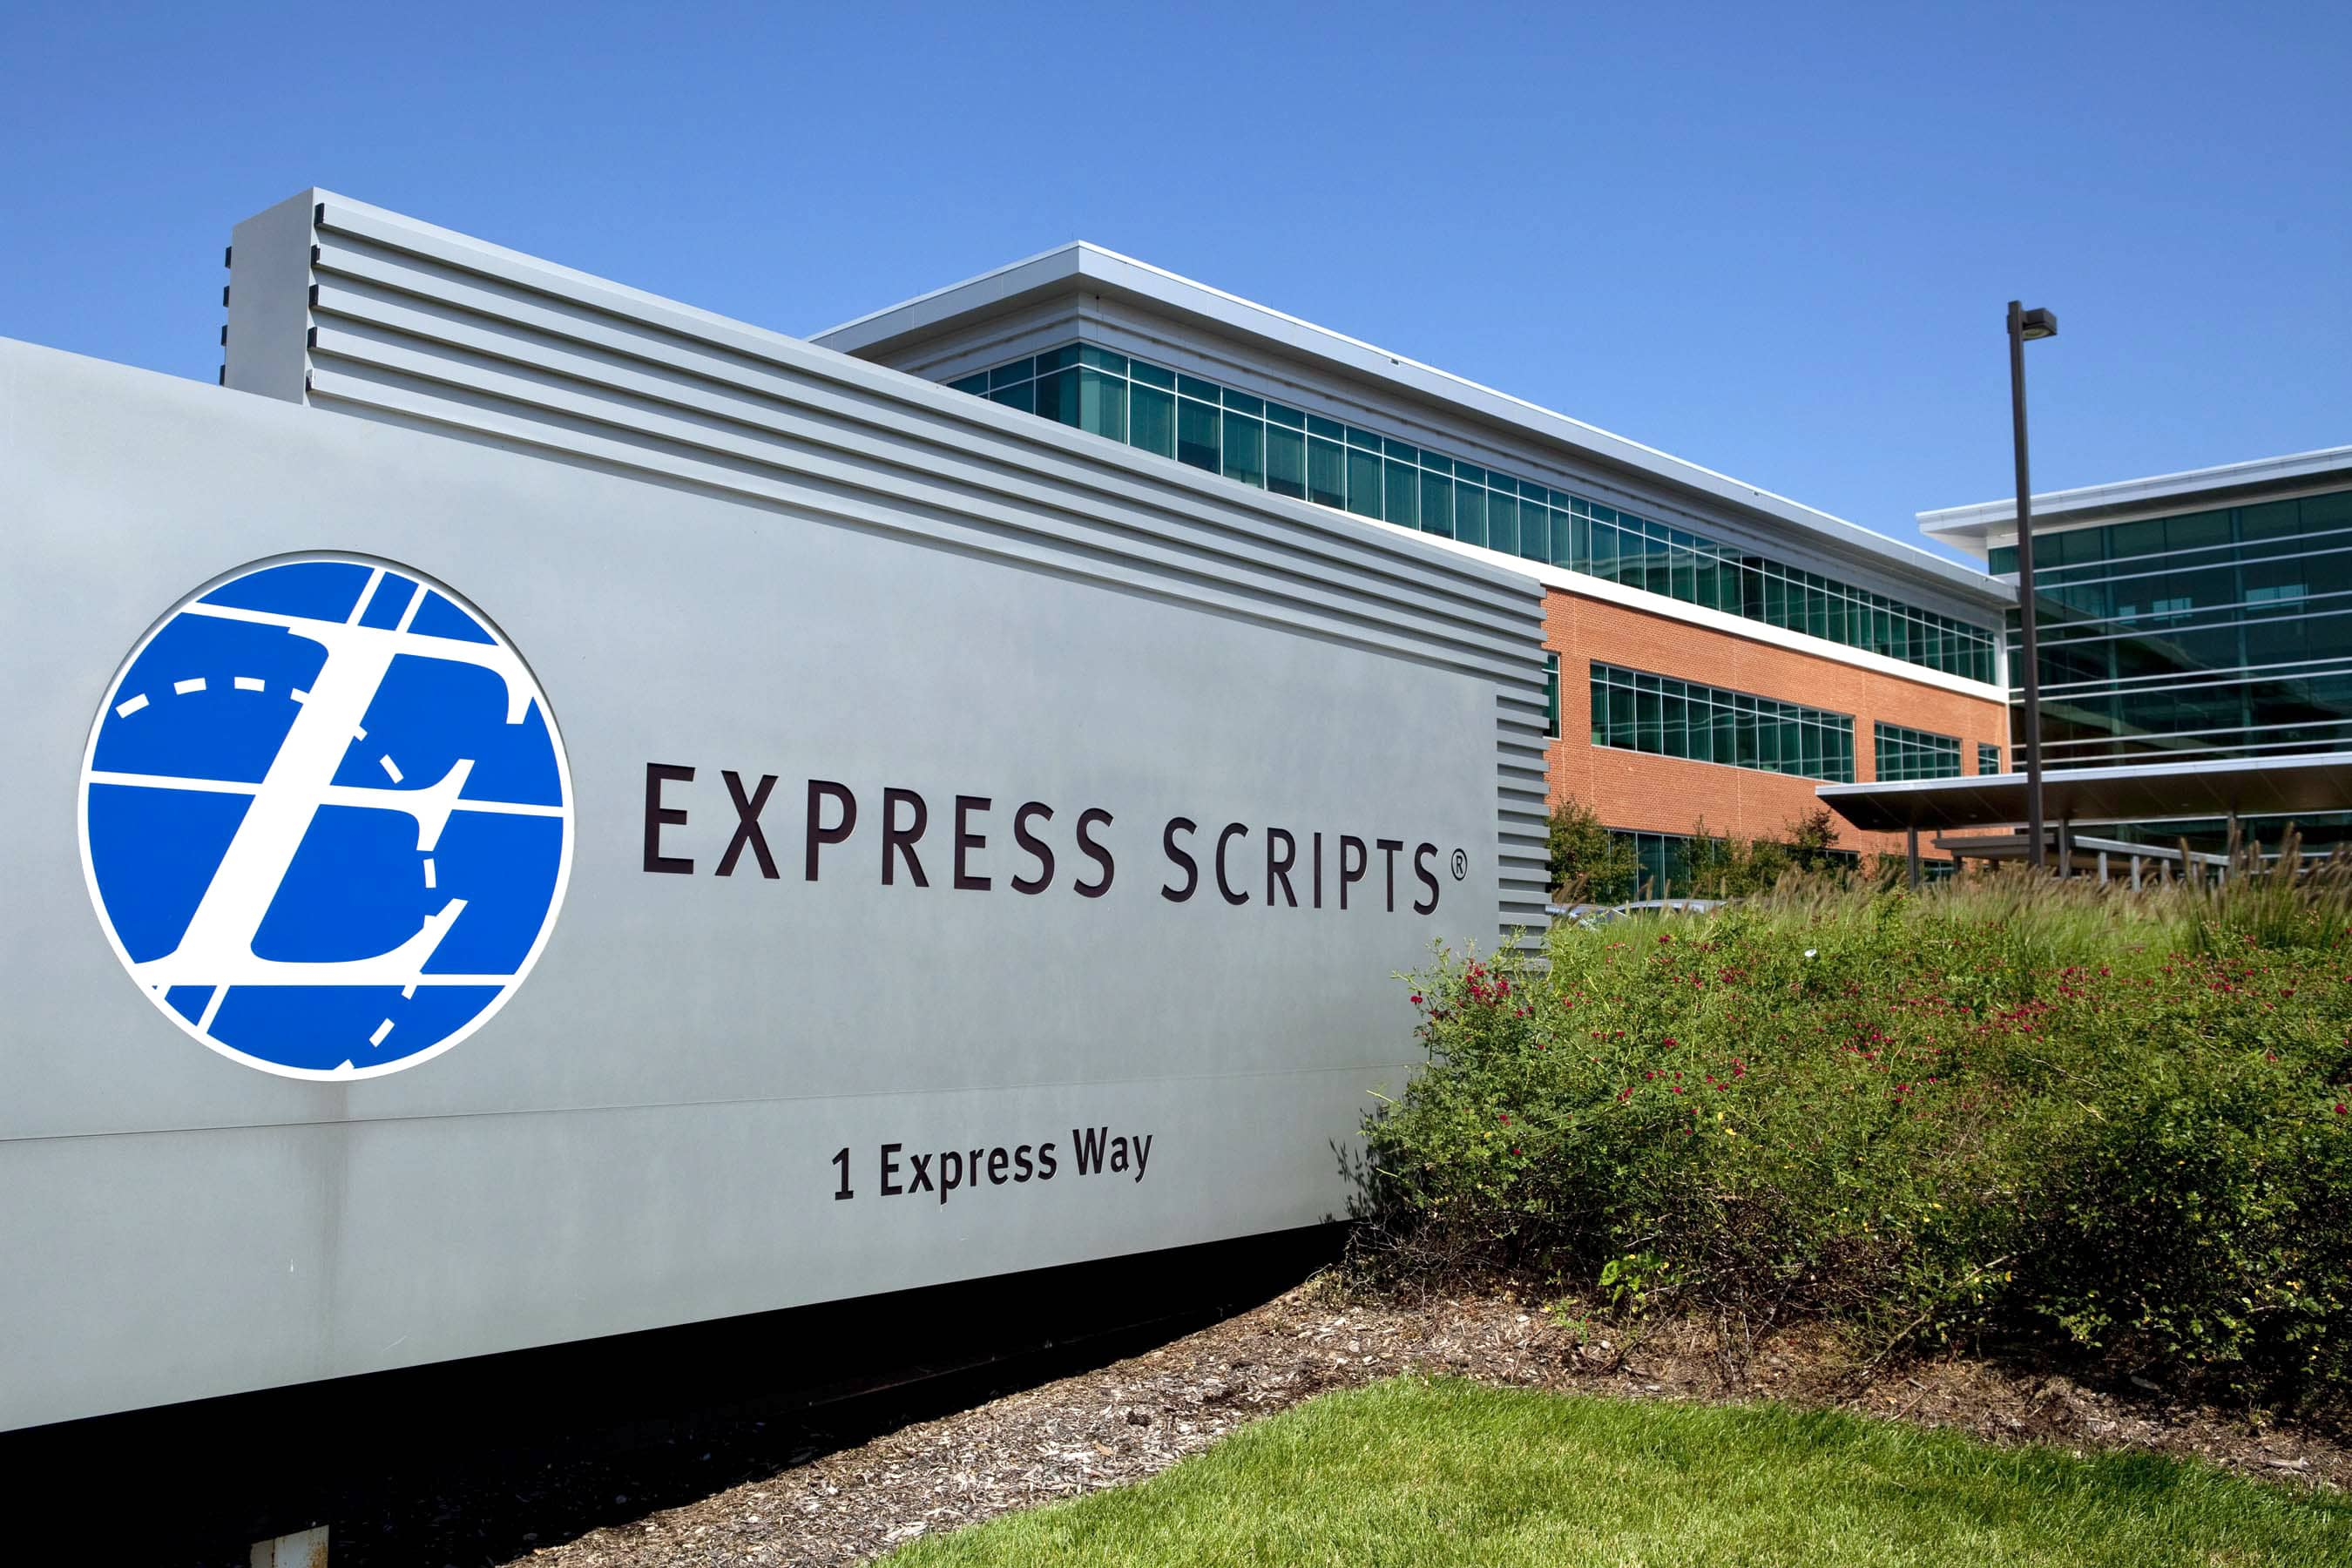 Express Scripts is getting paid to help pharma companies